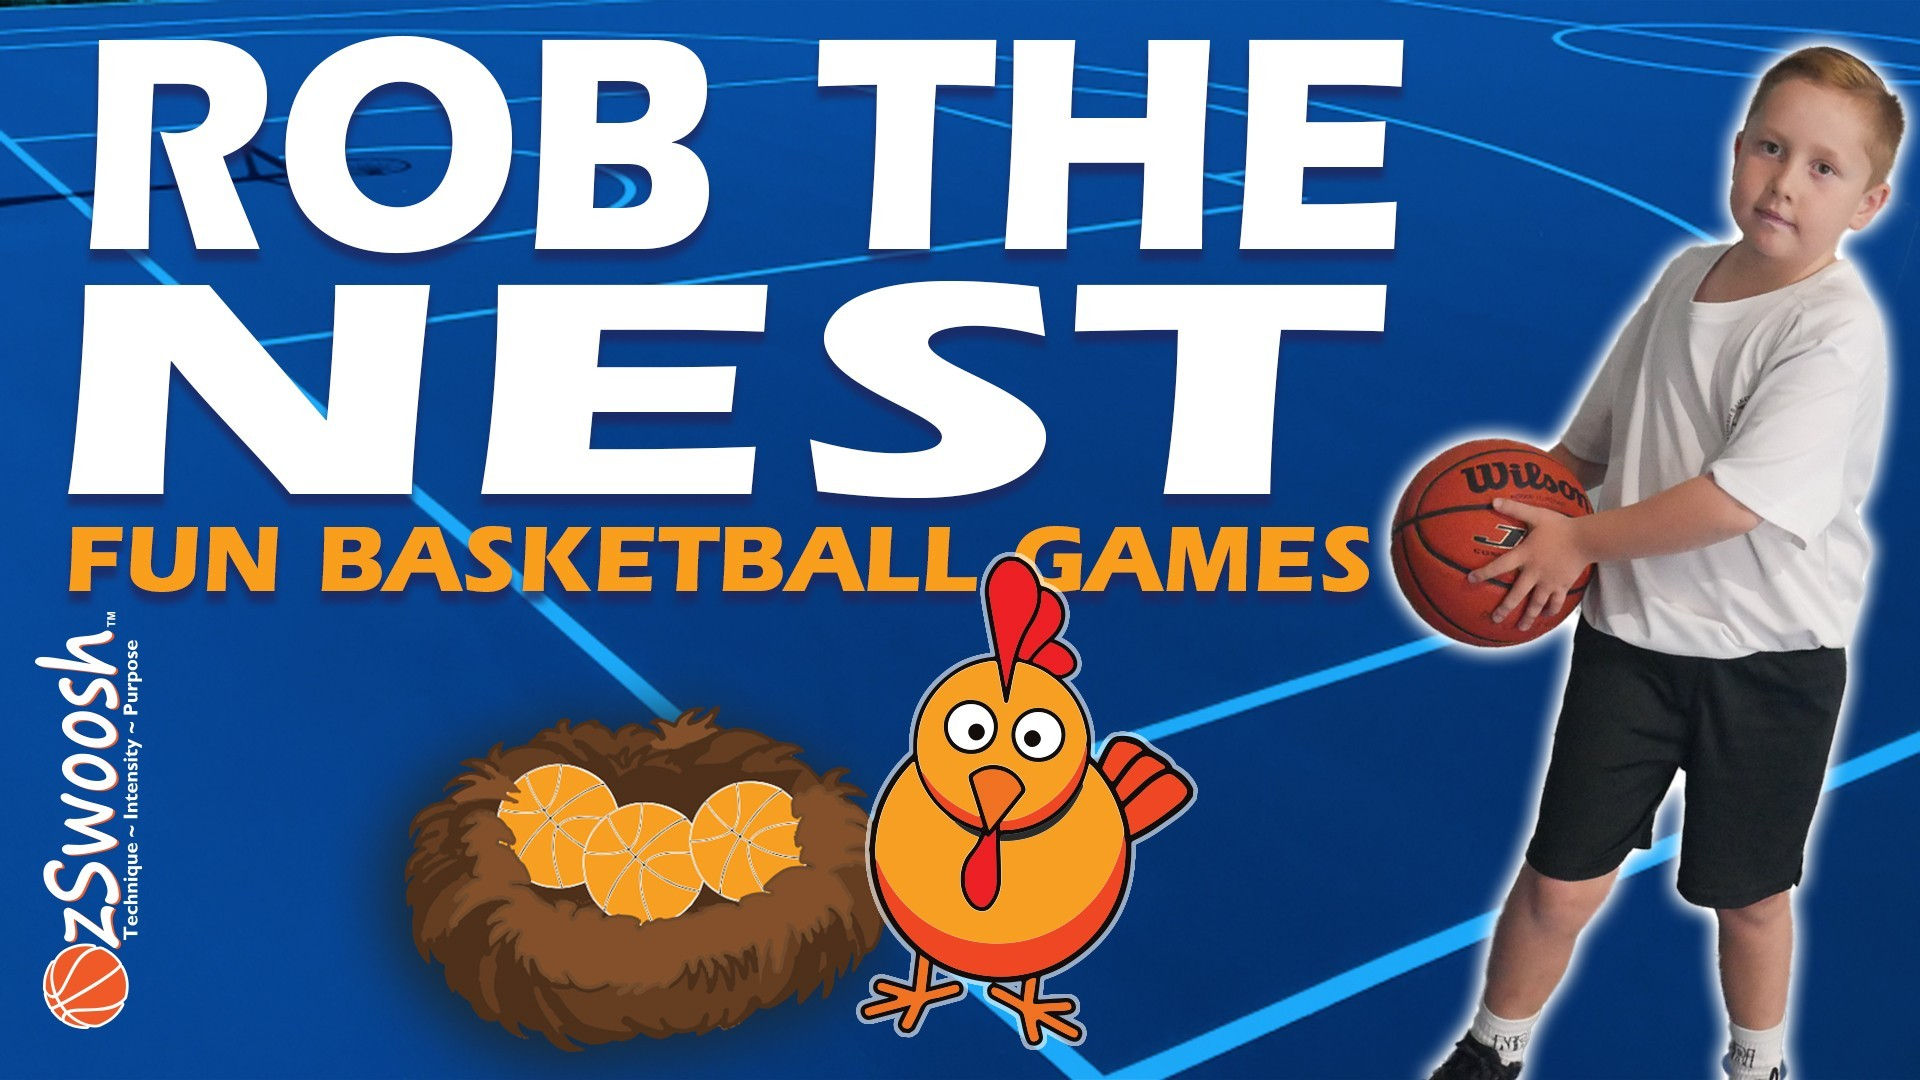 Fun Youth Basketball Drills For Kids - Rob The Nest (Dribbling Game)